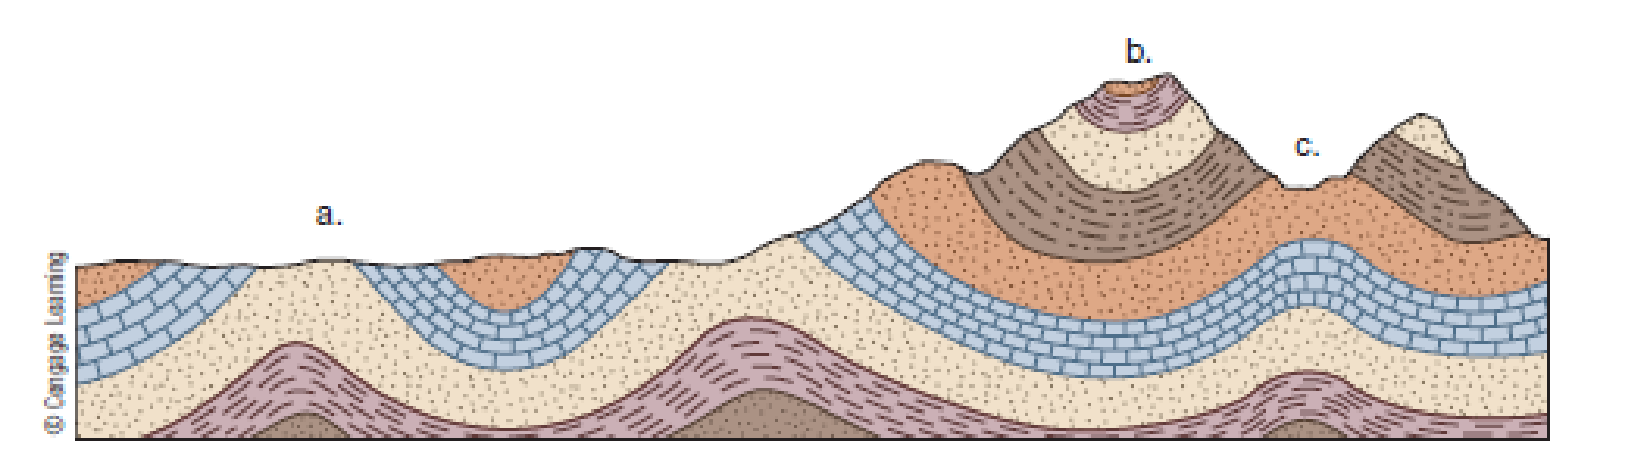 Chapter 11, Problem 13FQ, Why dont all anticlines form hills or mountains?